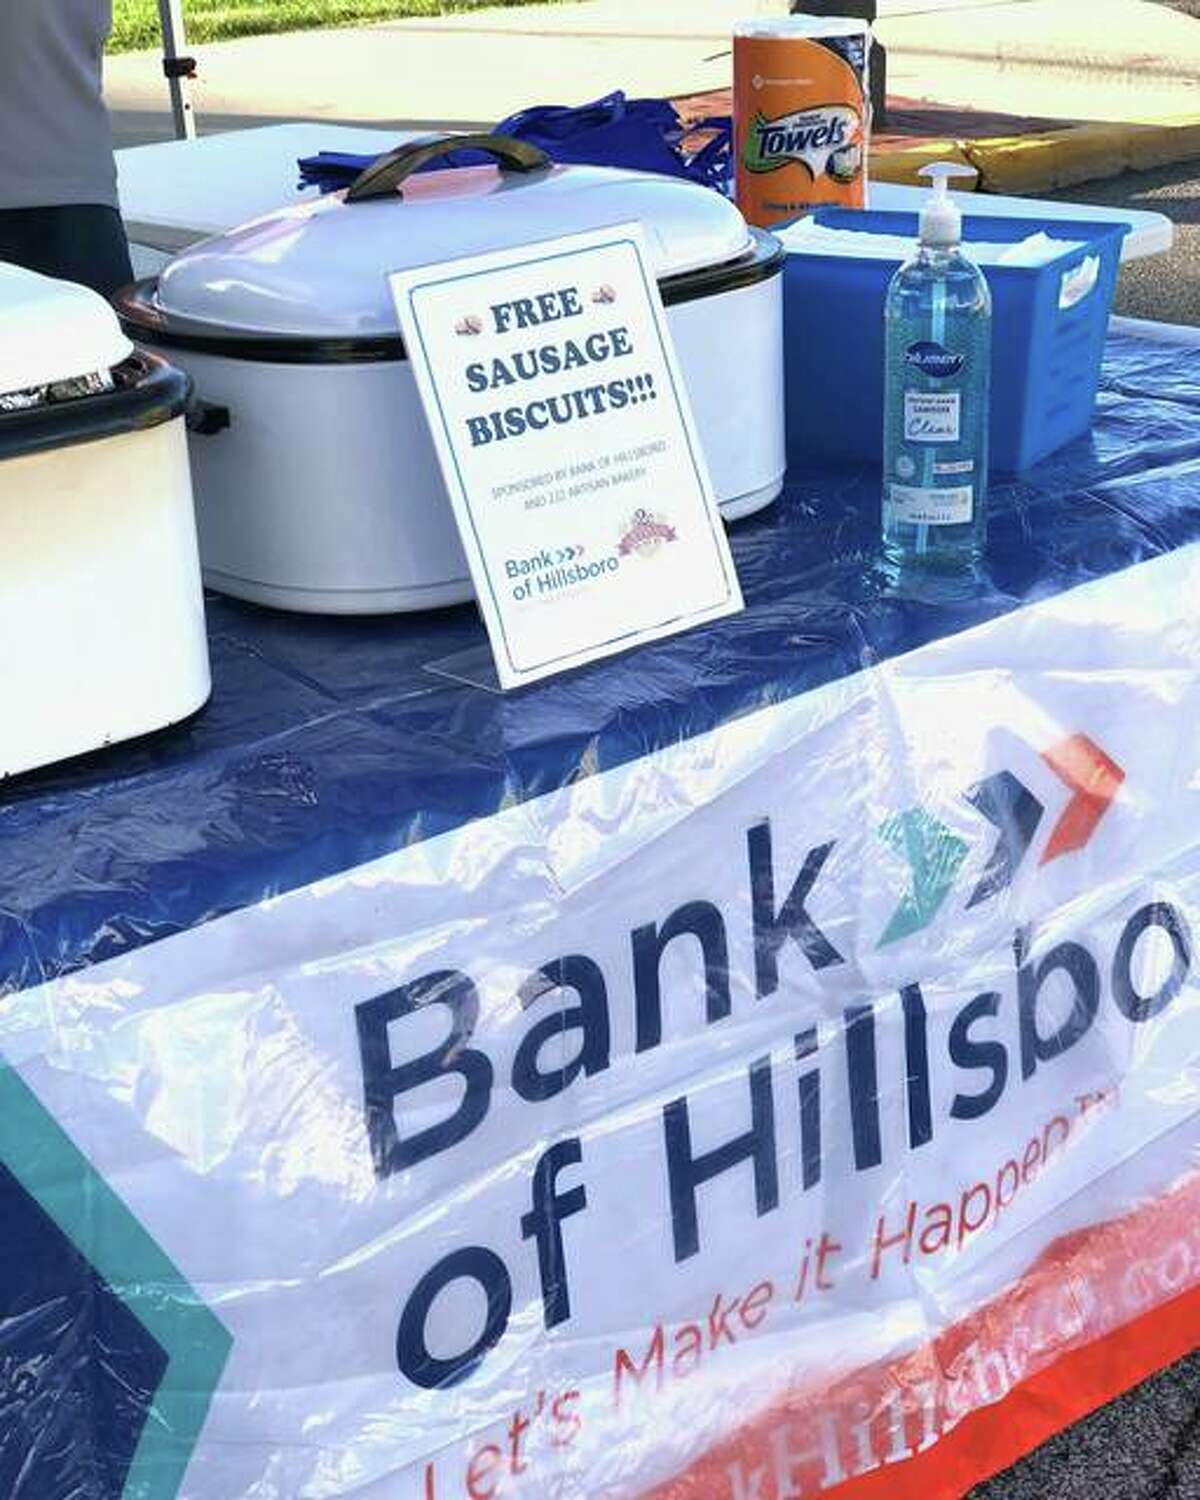 On Sept. 25, the Bank of Hillsboro helped the Goshen Market celebrate 25 years in operation by giving free breakfast sandwiches, which were made by 222 Artisan Bakery, to community members.